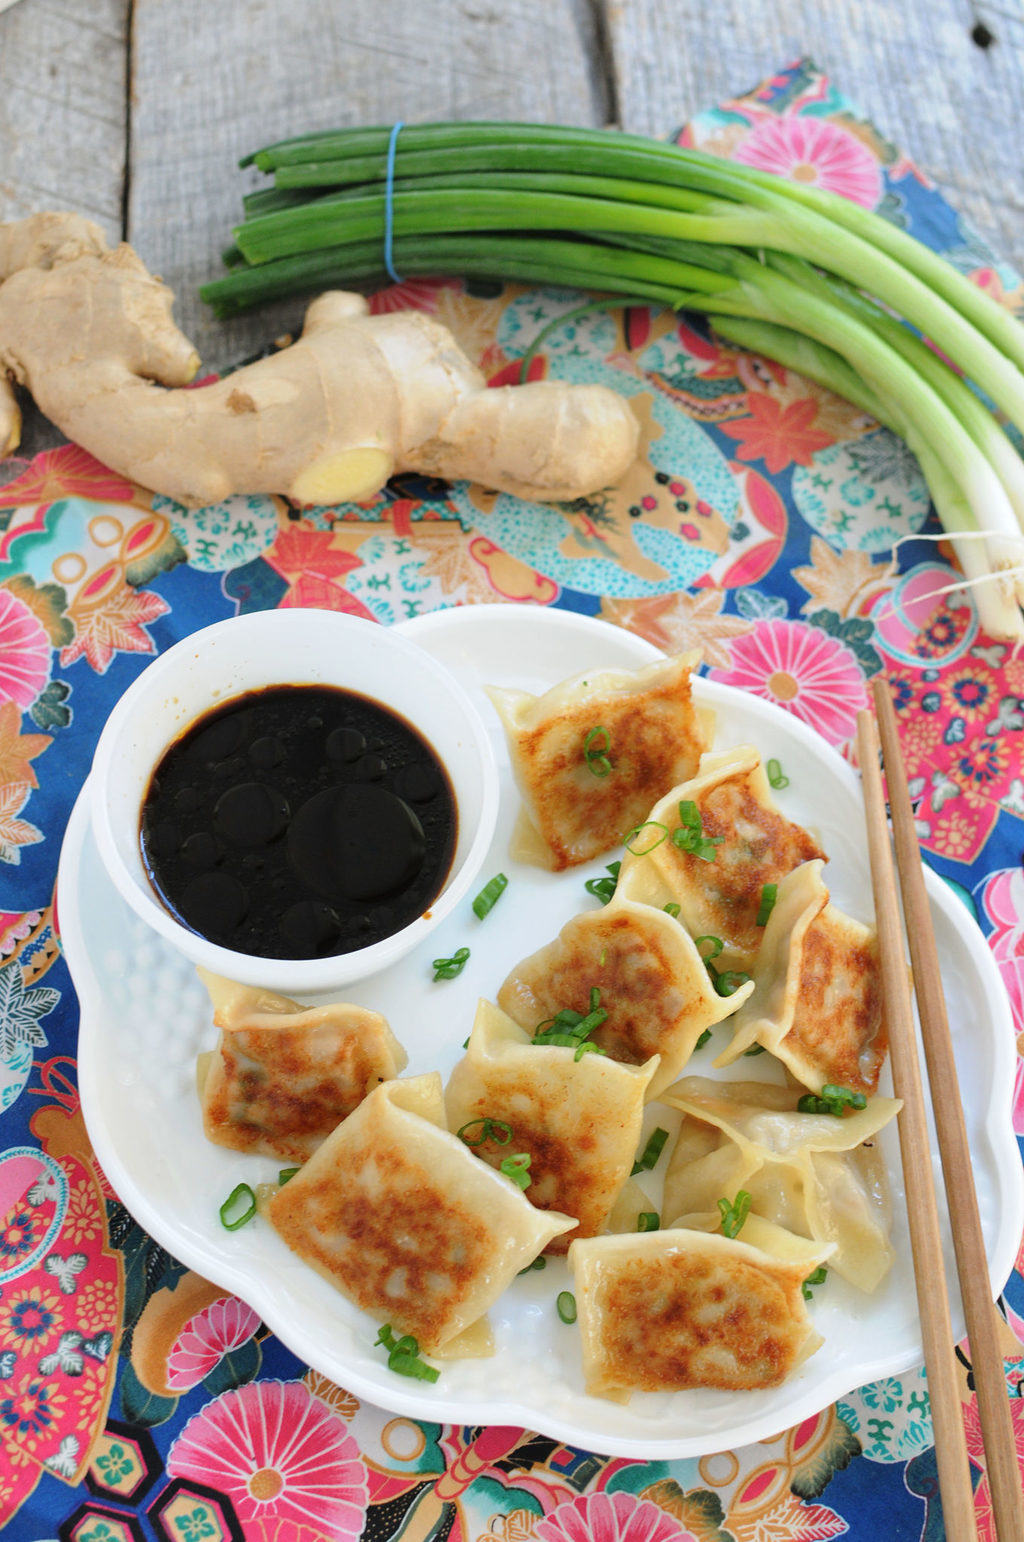 Make AHead Potstickers From Eatinonthecheap.com